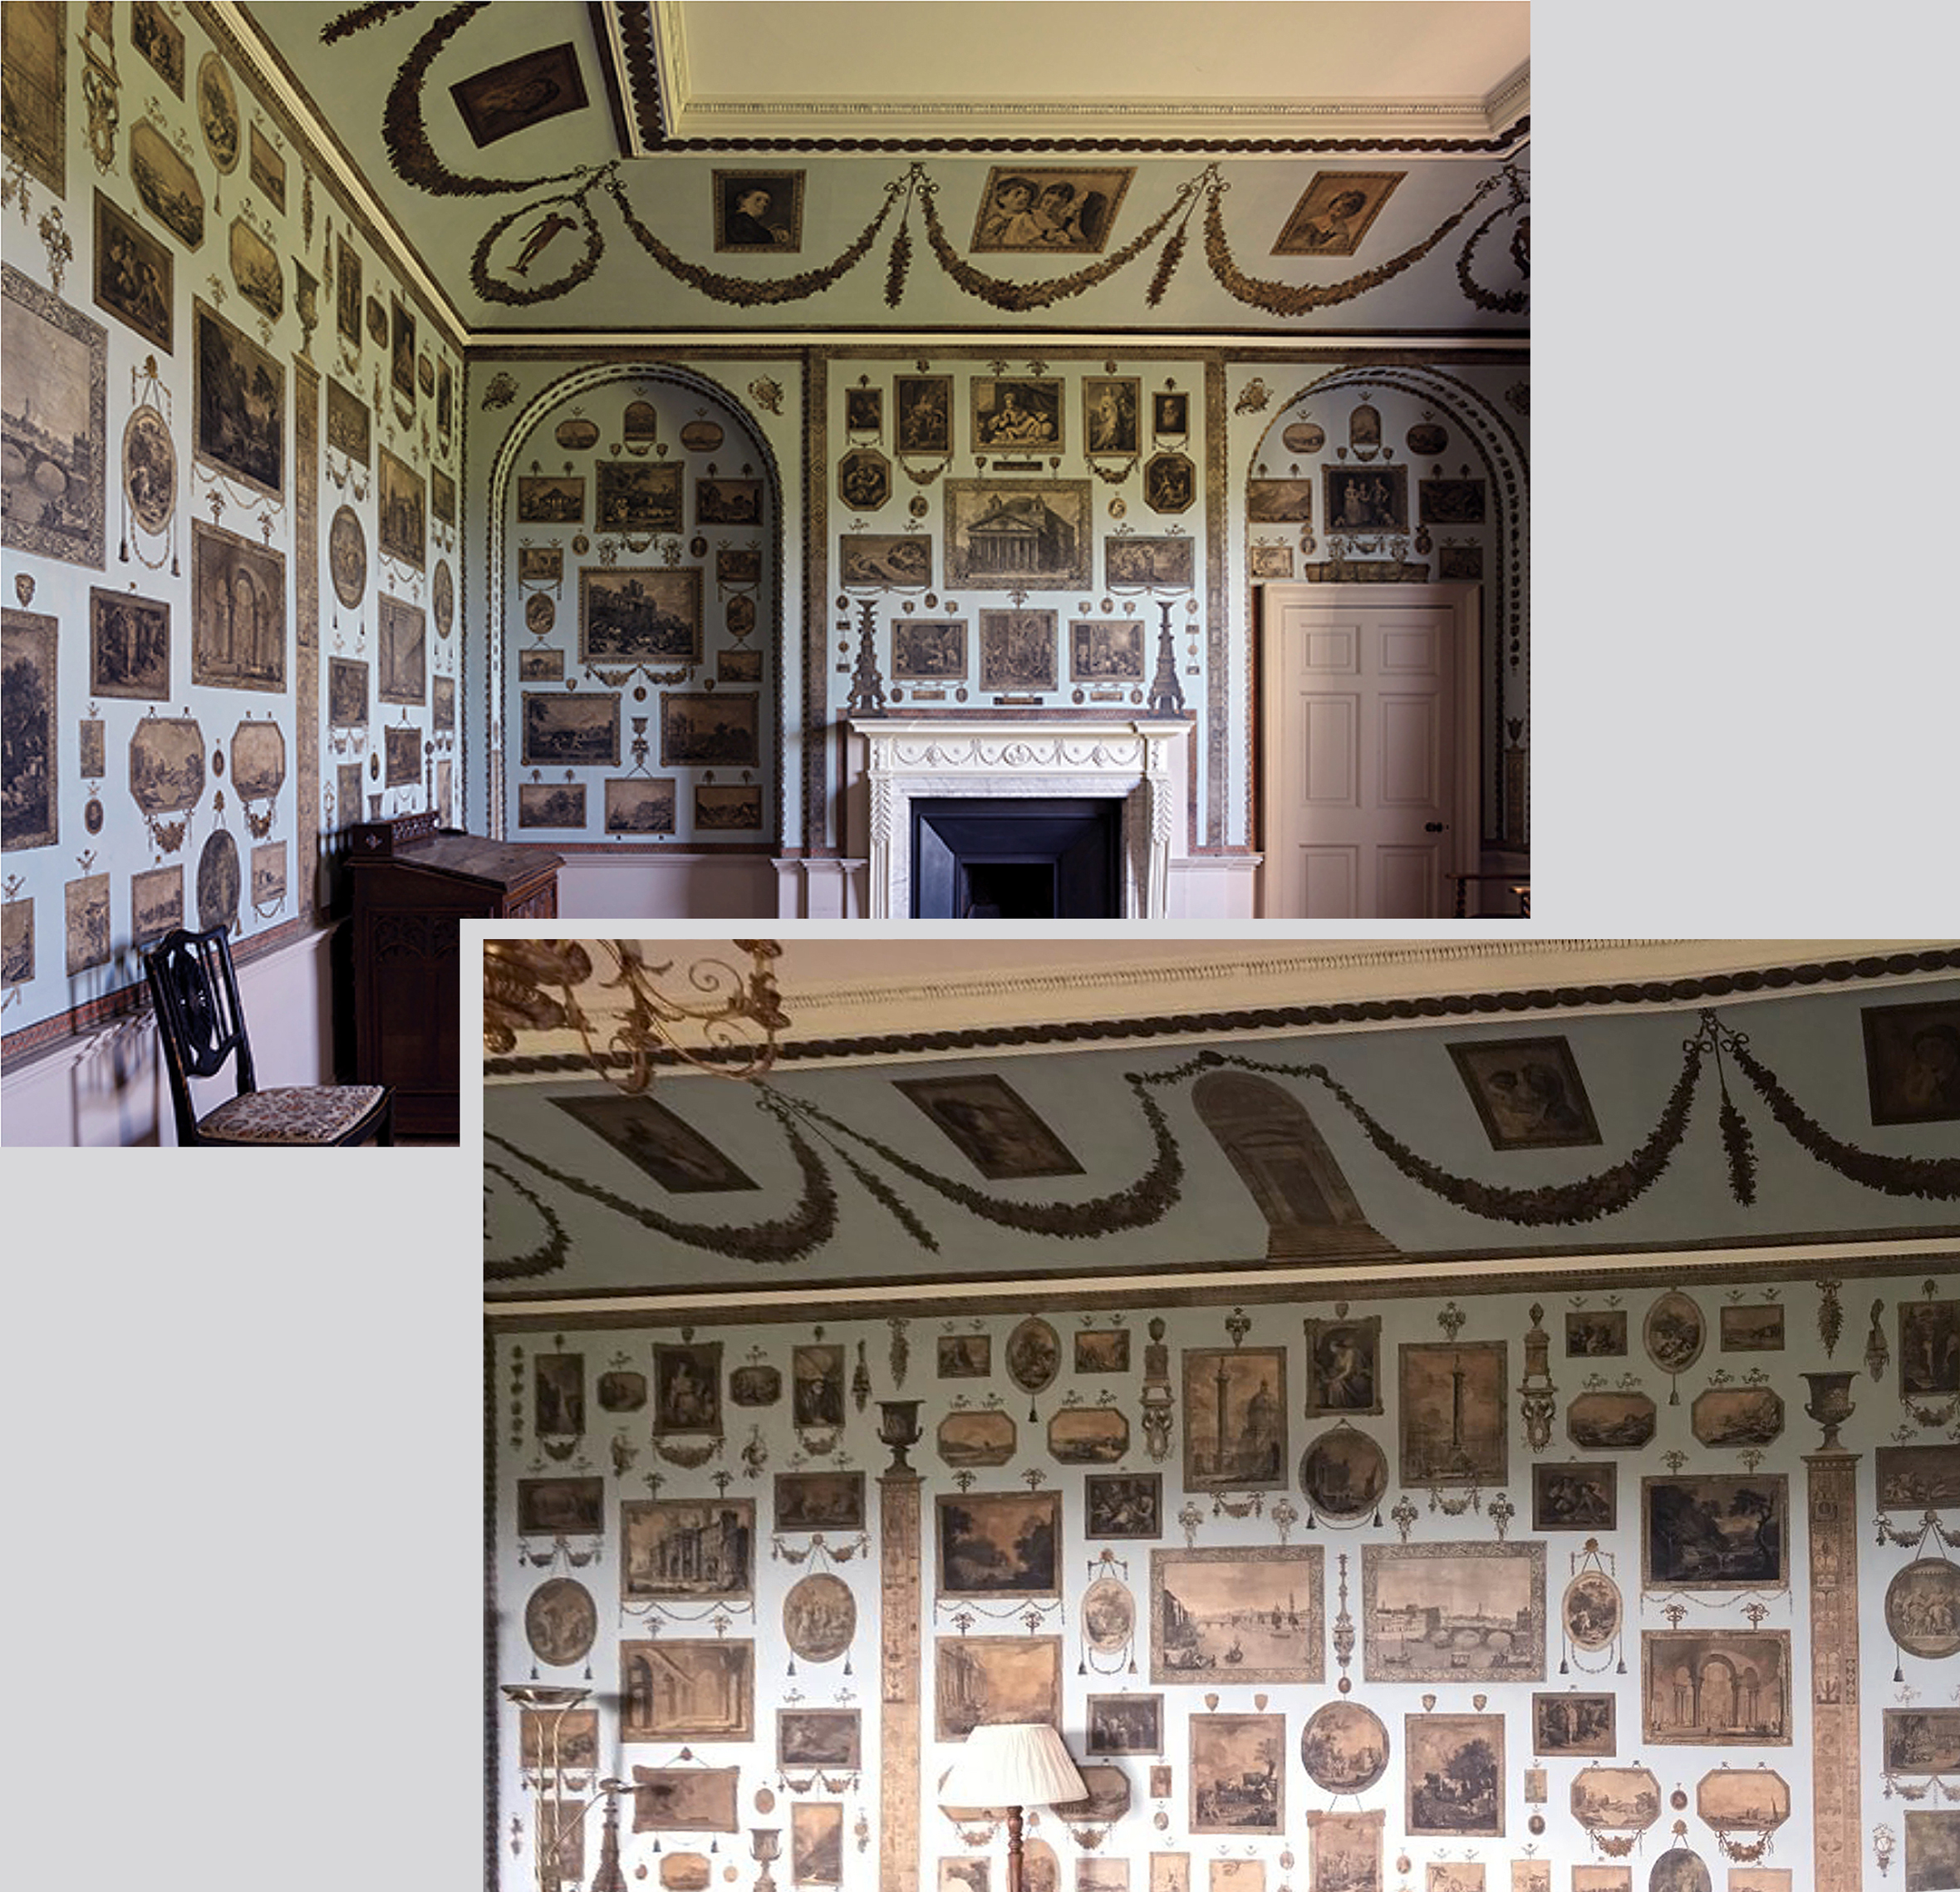 34A Woodhall Park 1782 Restored Print Room 1782 two views